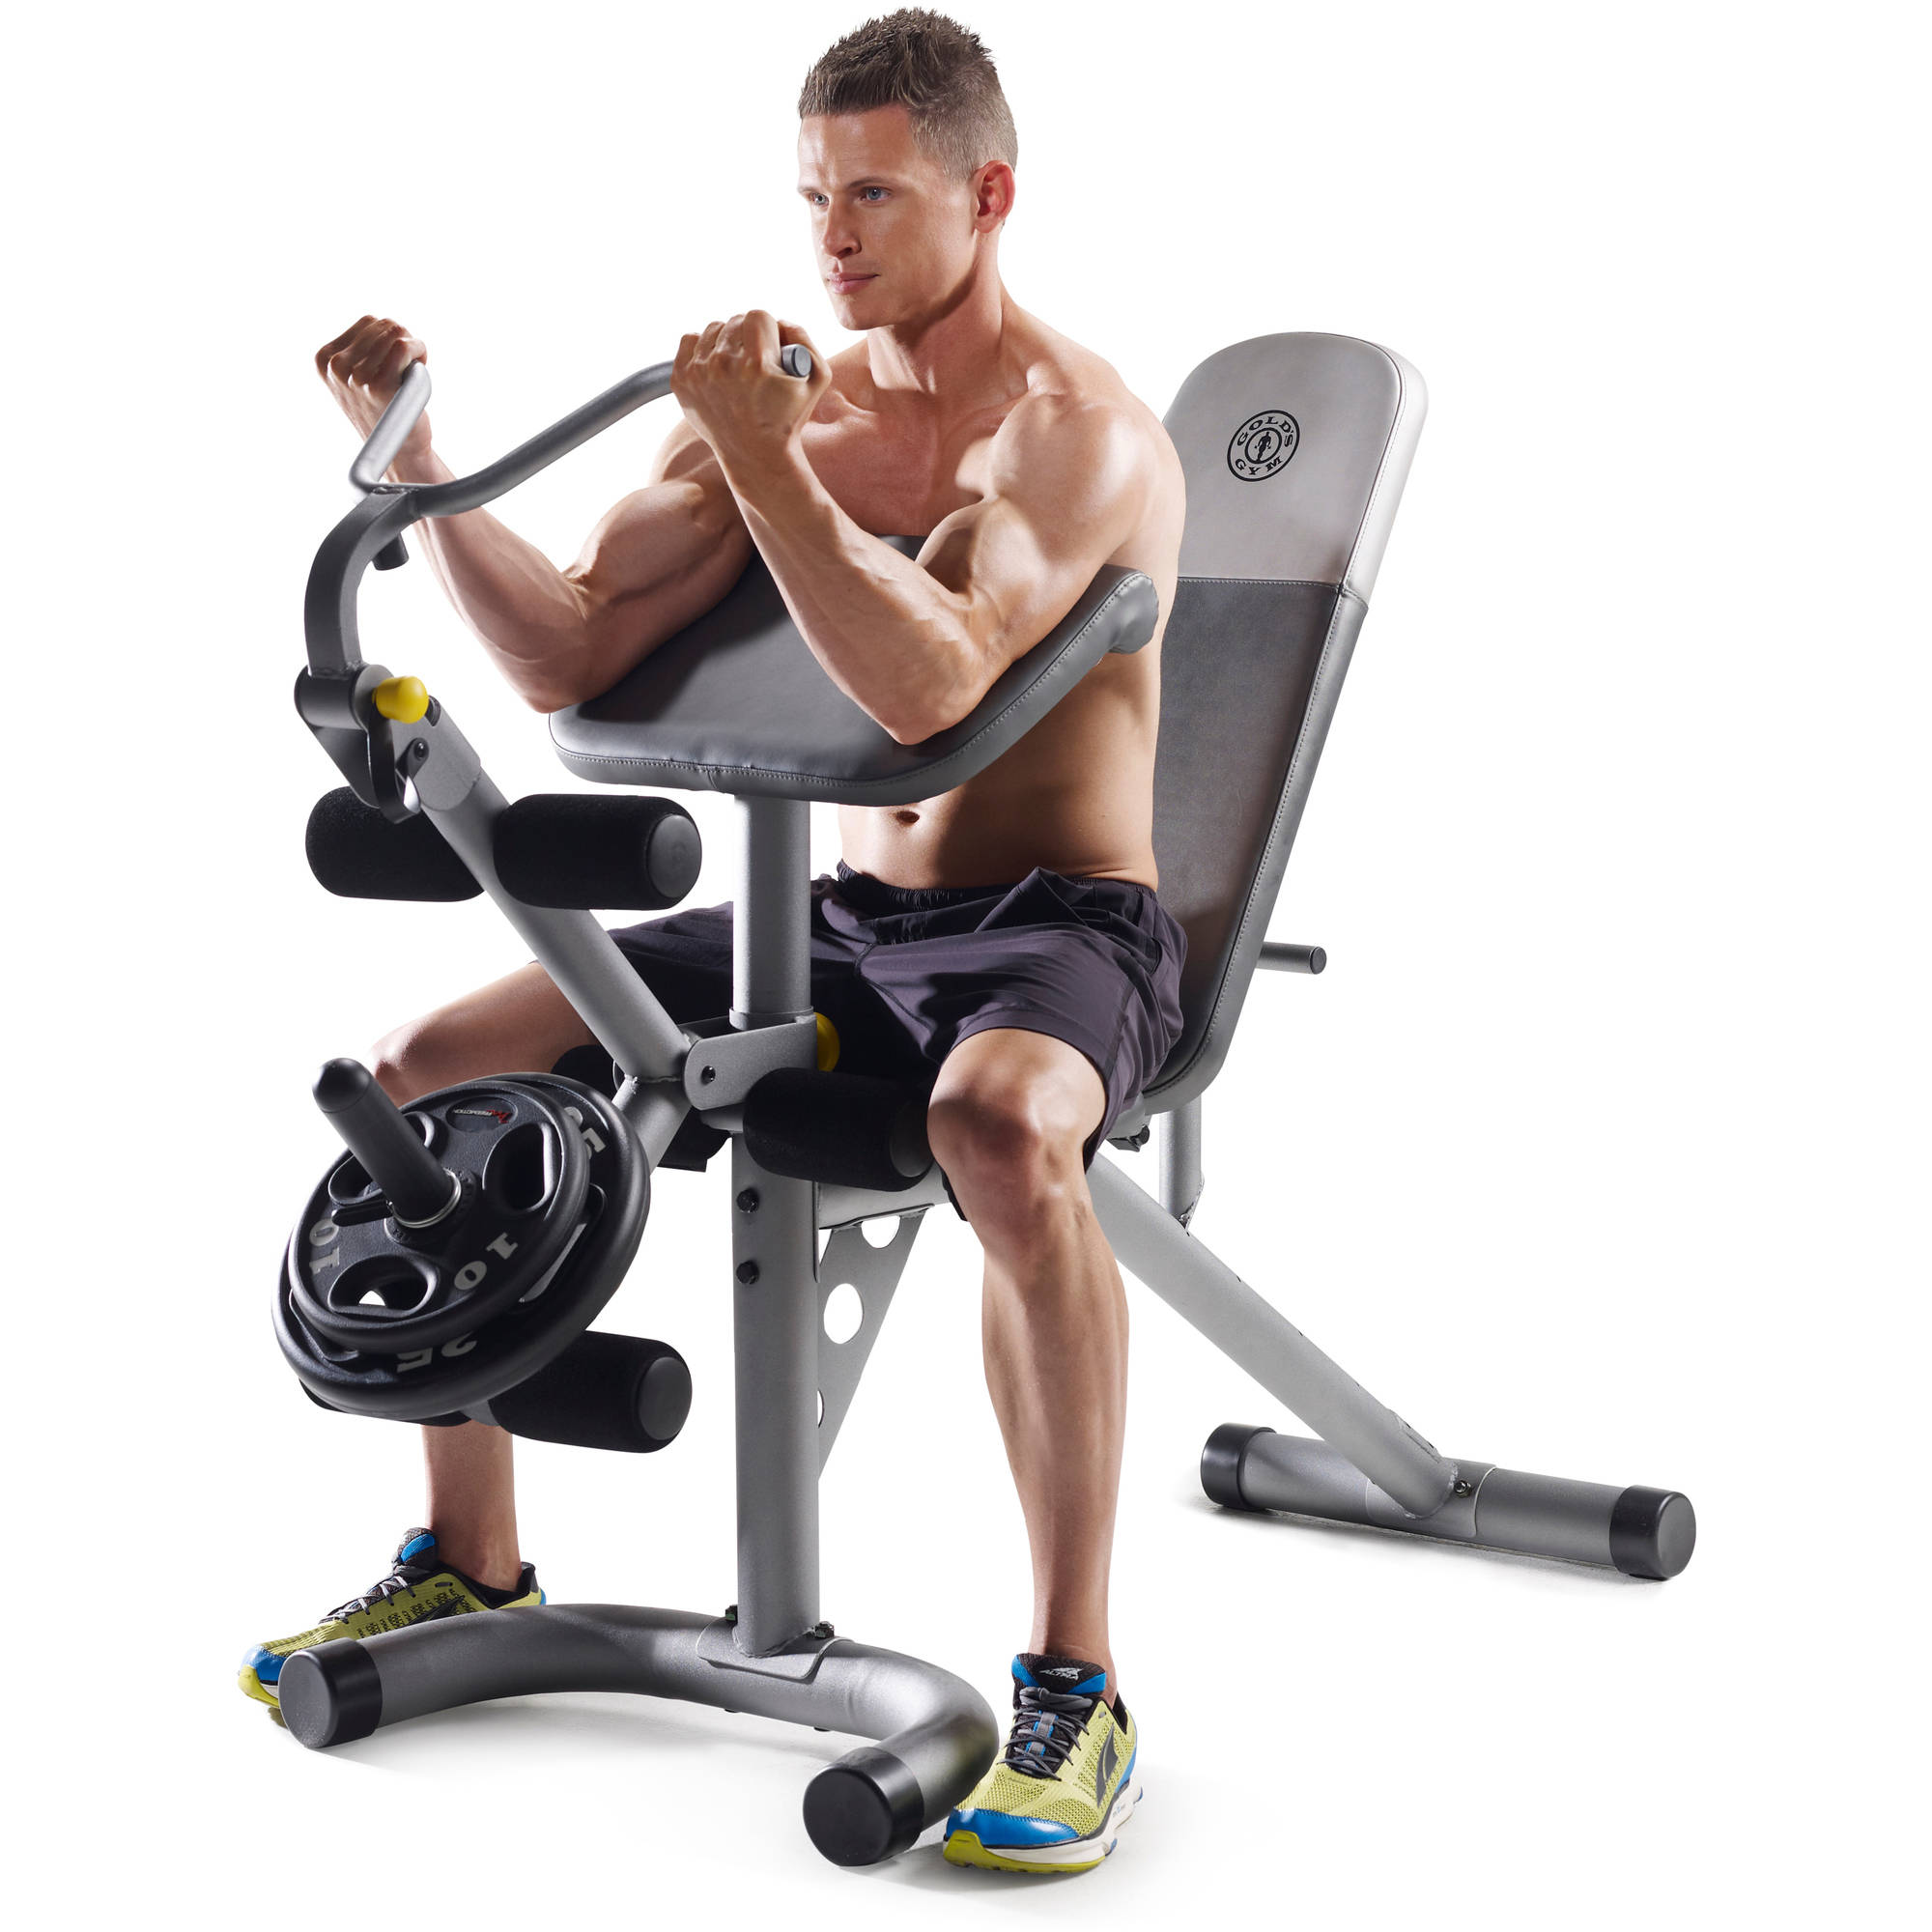 weight warehouse incline fitness shop warehousefitness horizon bench